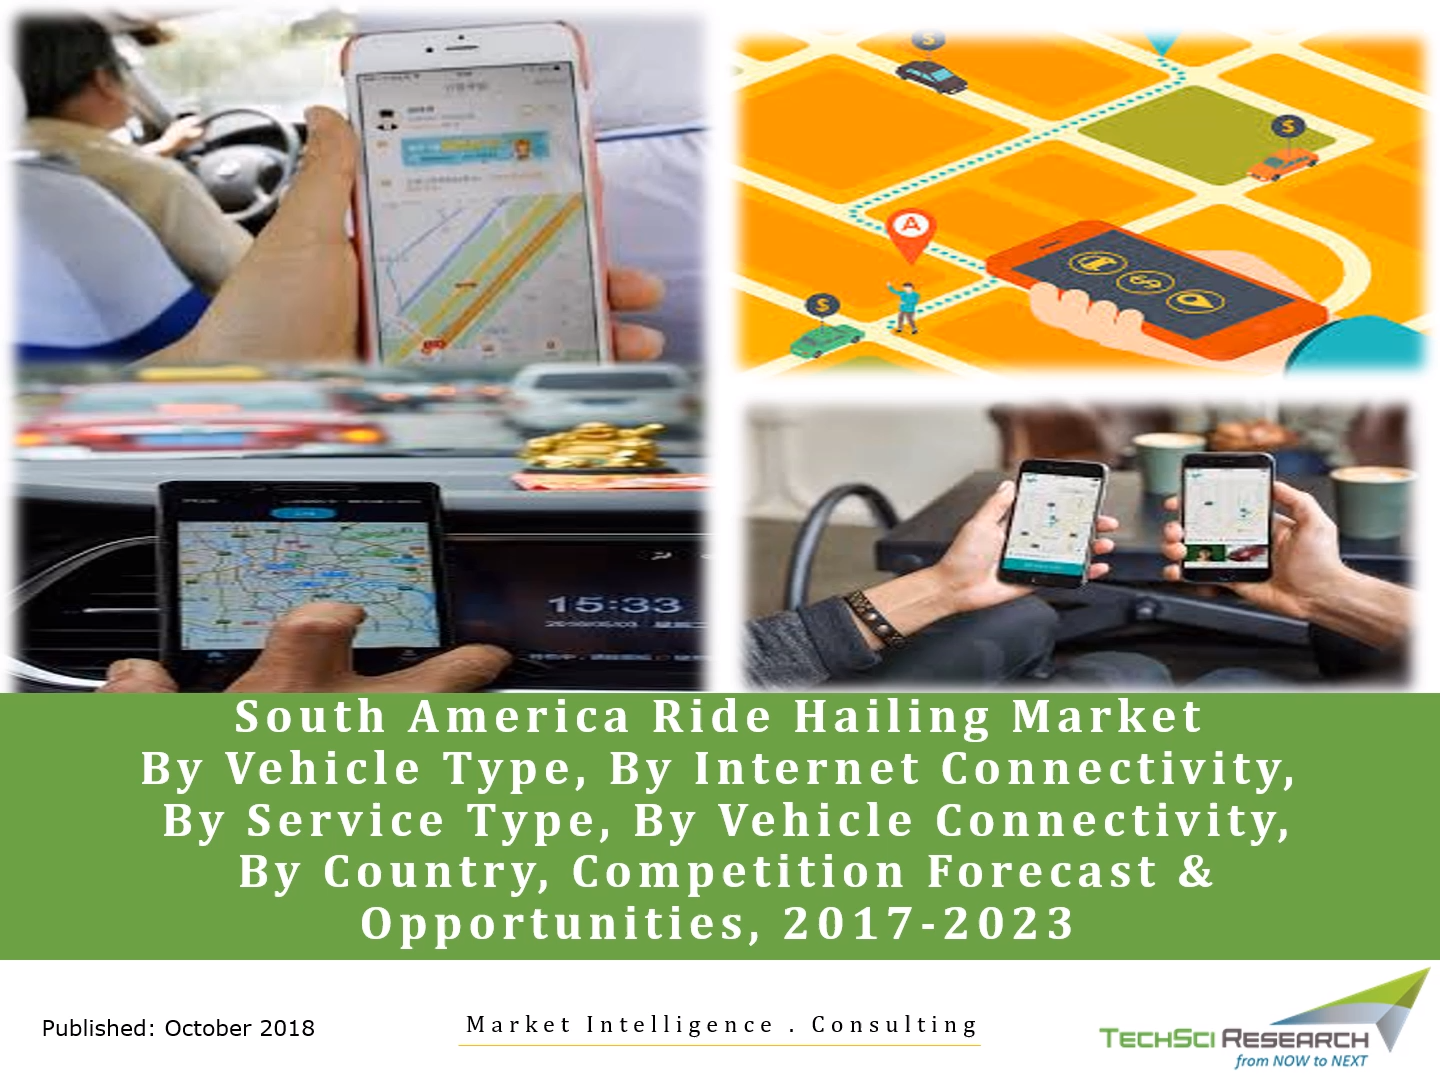 South America Art Culture South America Videos Design Chile South America Food South In 2020 Information And Communications Technology Marketing Video Marketing